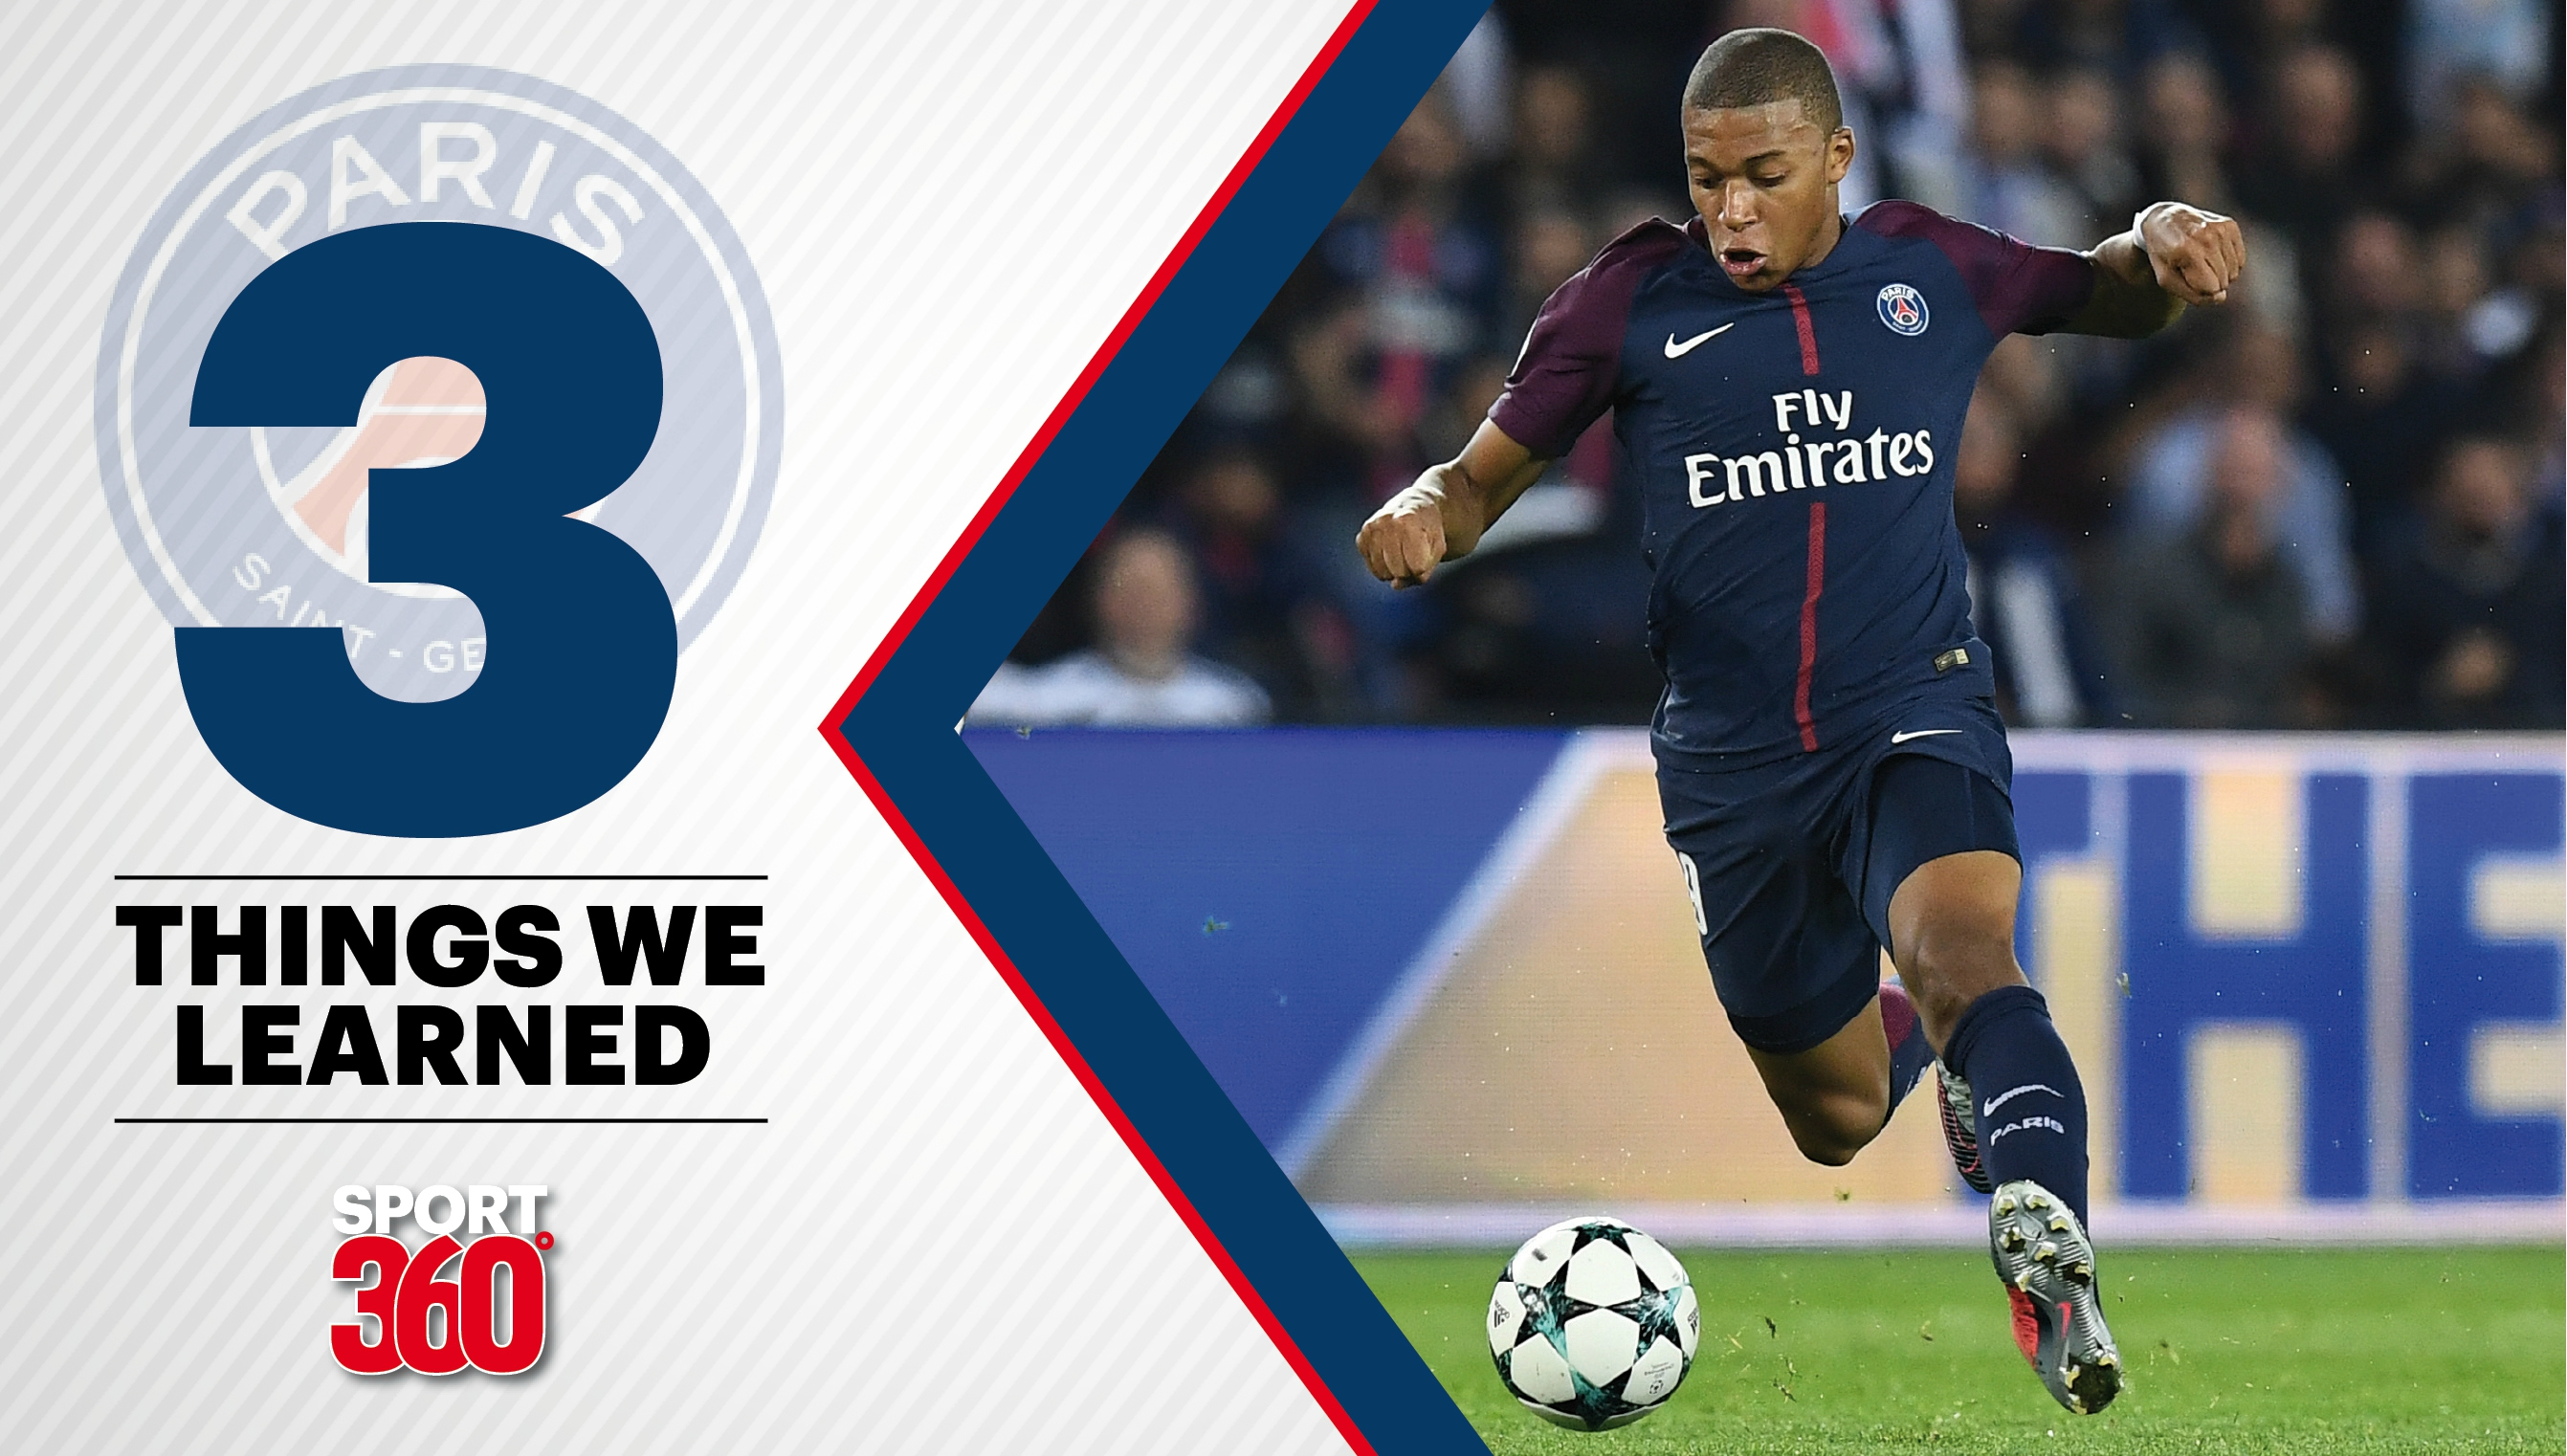 d4b612c906ac Neymar starred as Paris Saint-Germain sent out a statement of intent with  an impressive 3-0 Champions League victory over Bayern Munich.